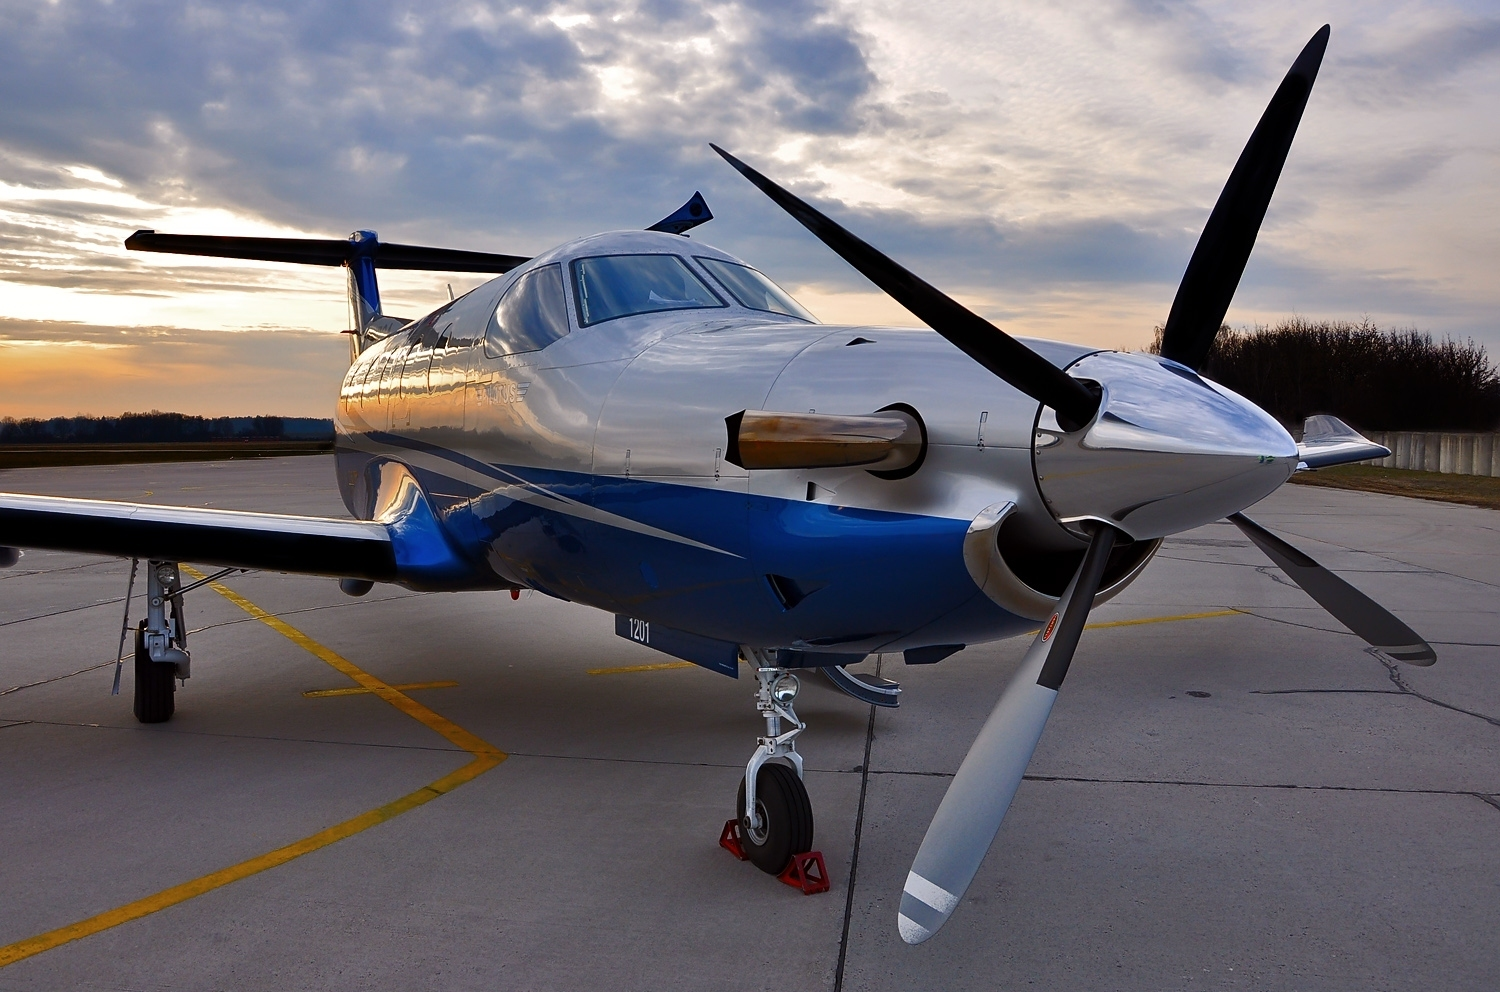 Pilatus PC-12 Single-propeller Aircraft Wallpaper 2275